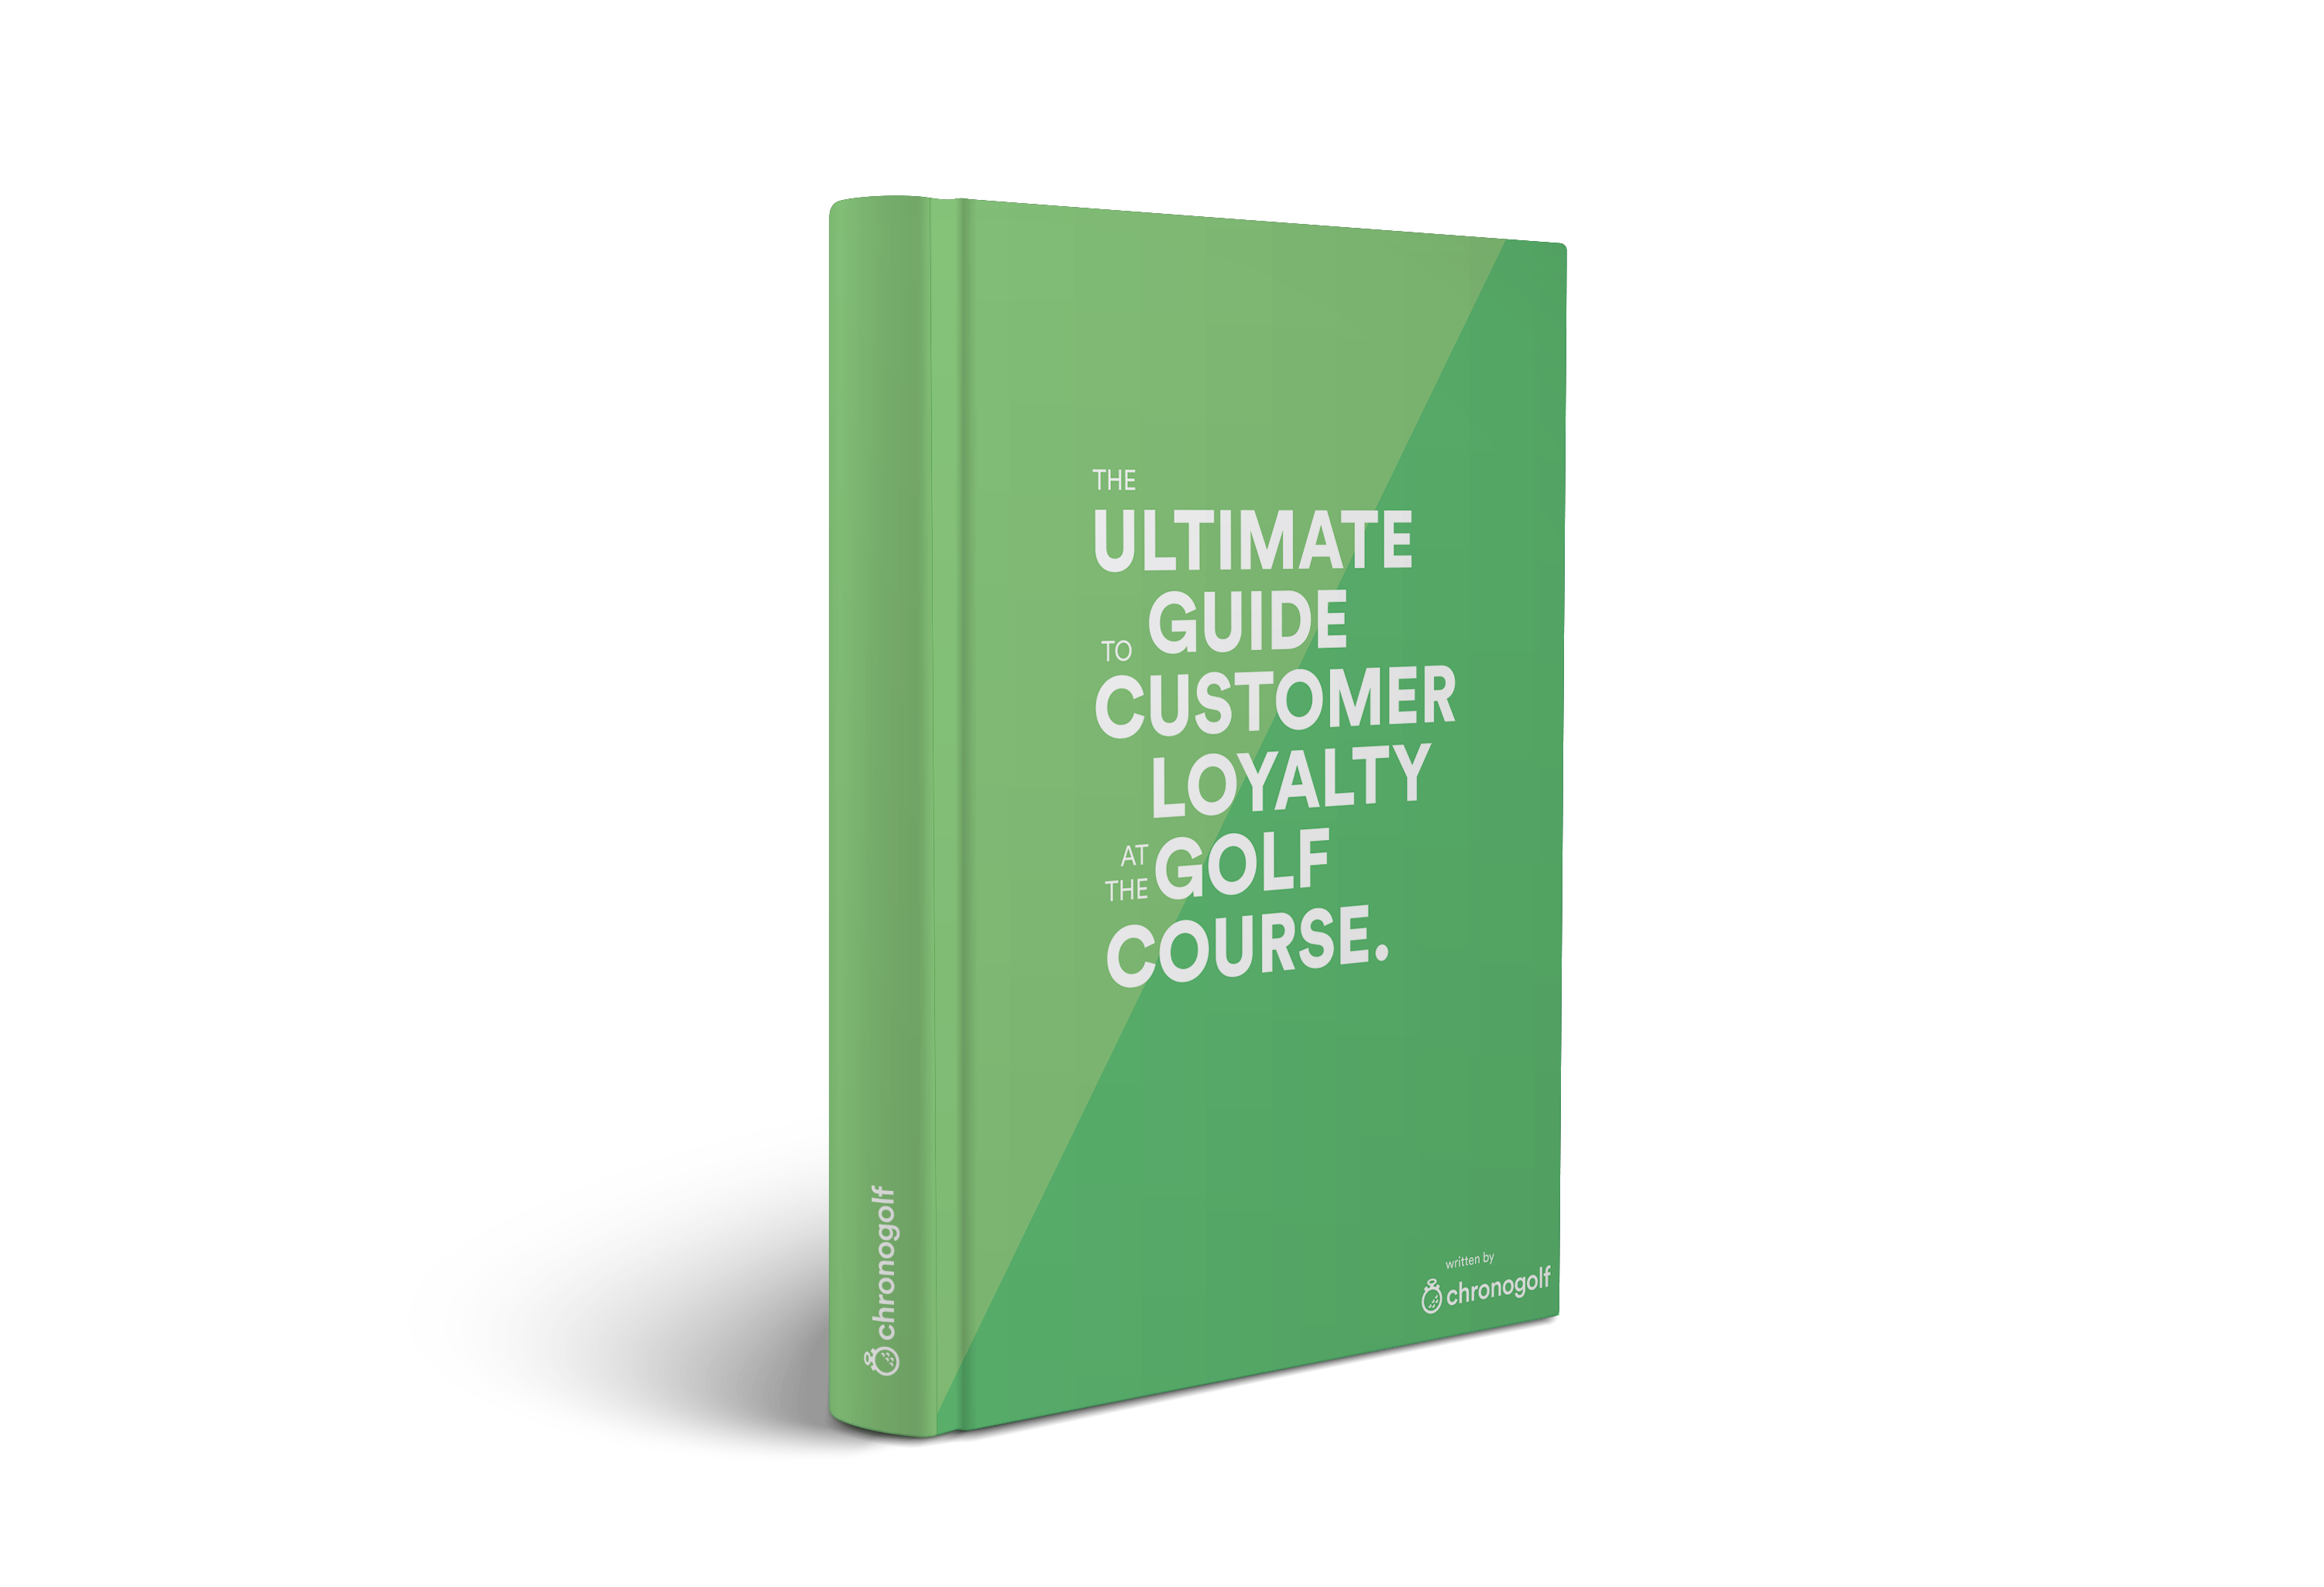 White-Paper-Ultime-Guide-Customer-Loyalty-1